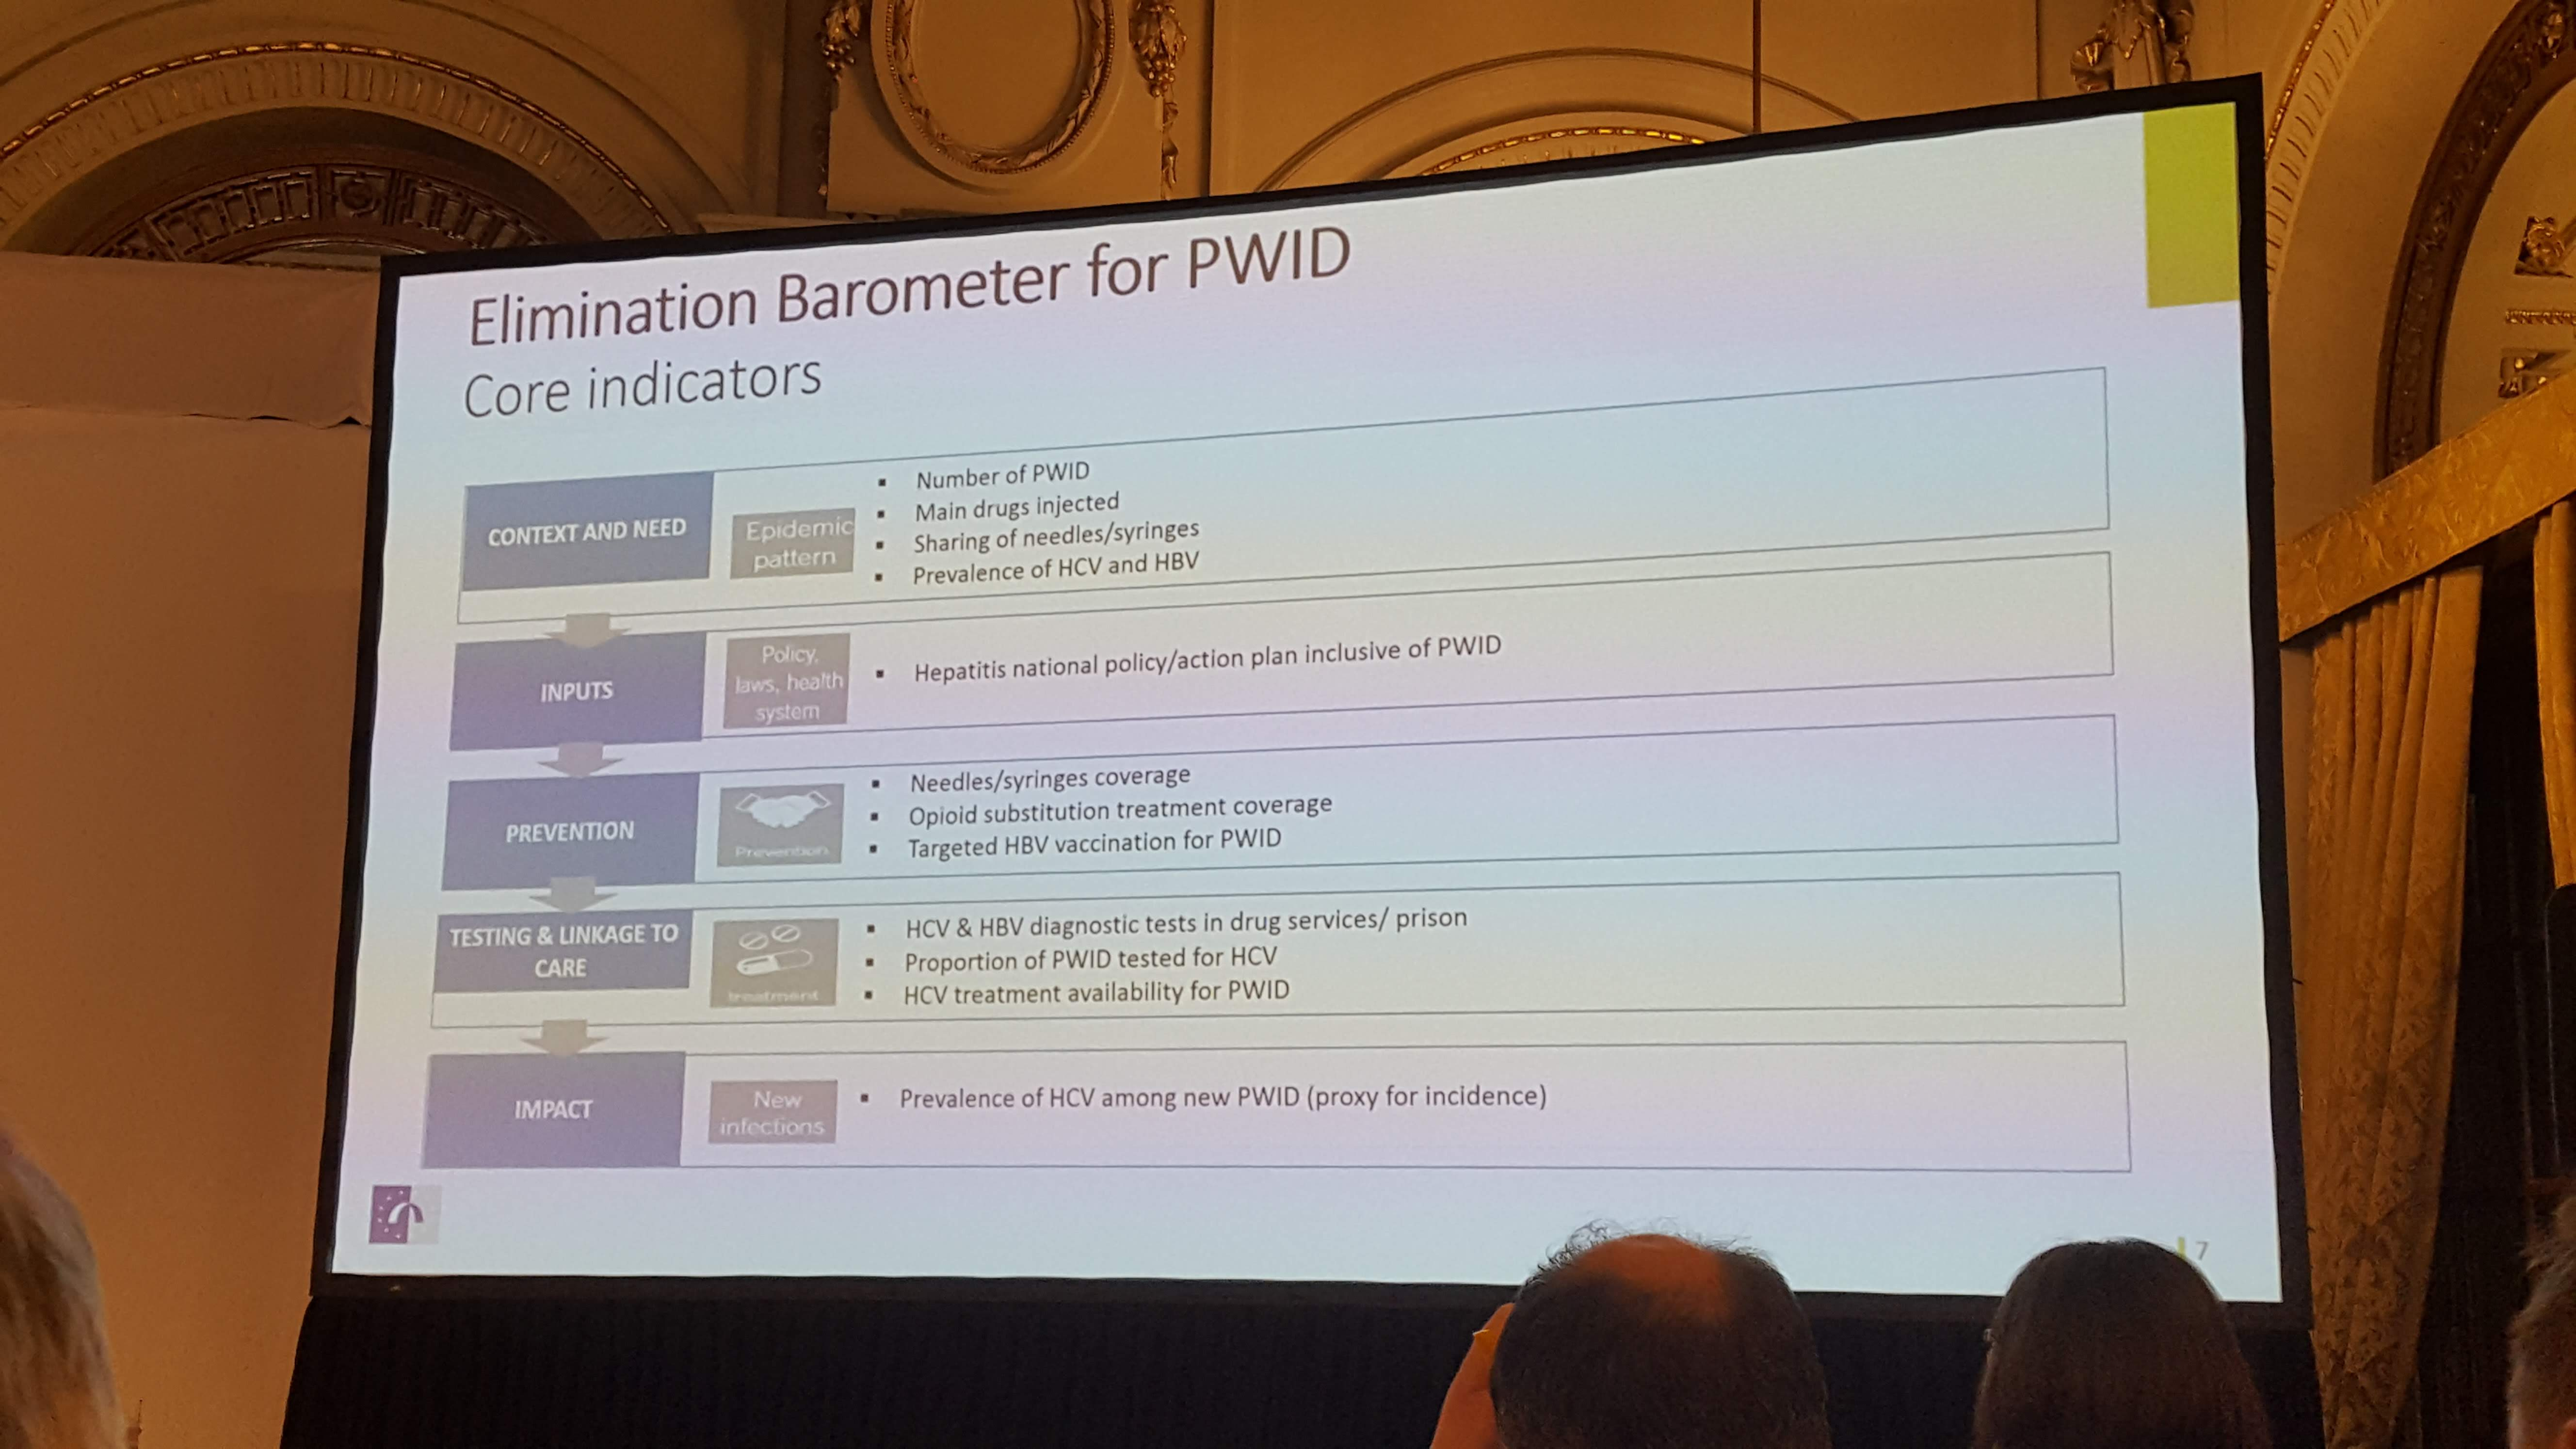 Elimination Barometer for PWID by EMCDDA, HepHIV 2019